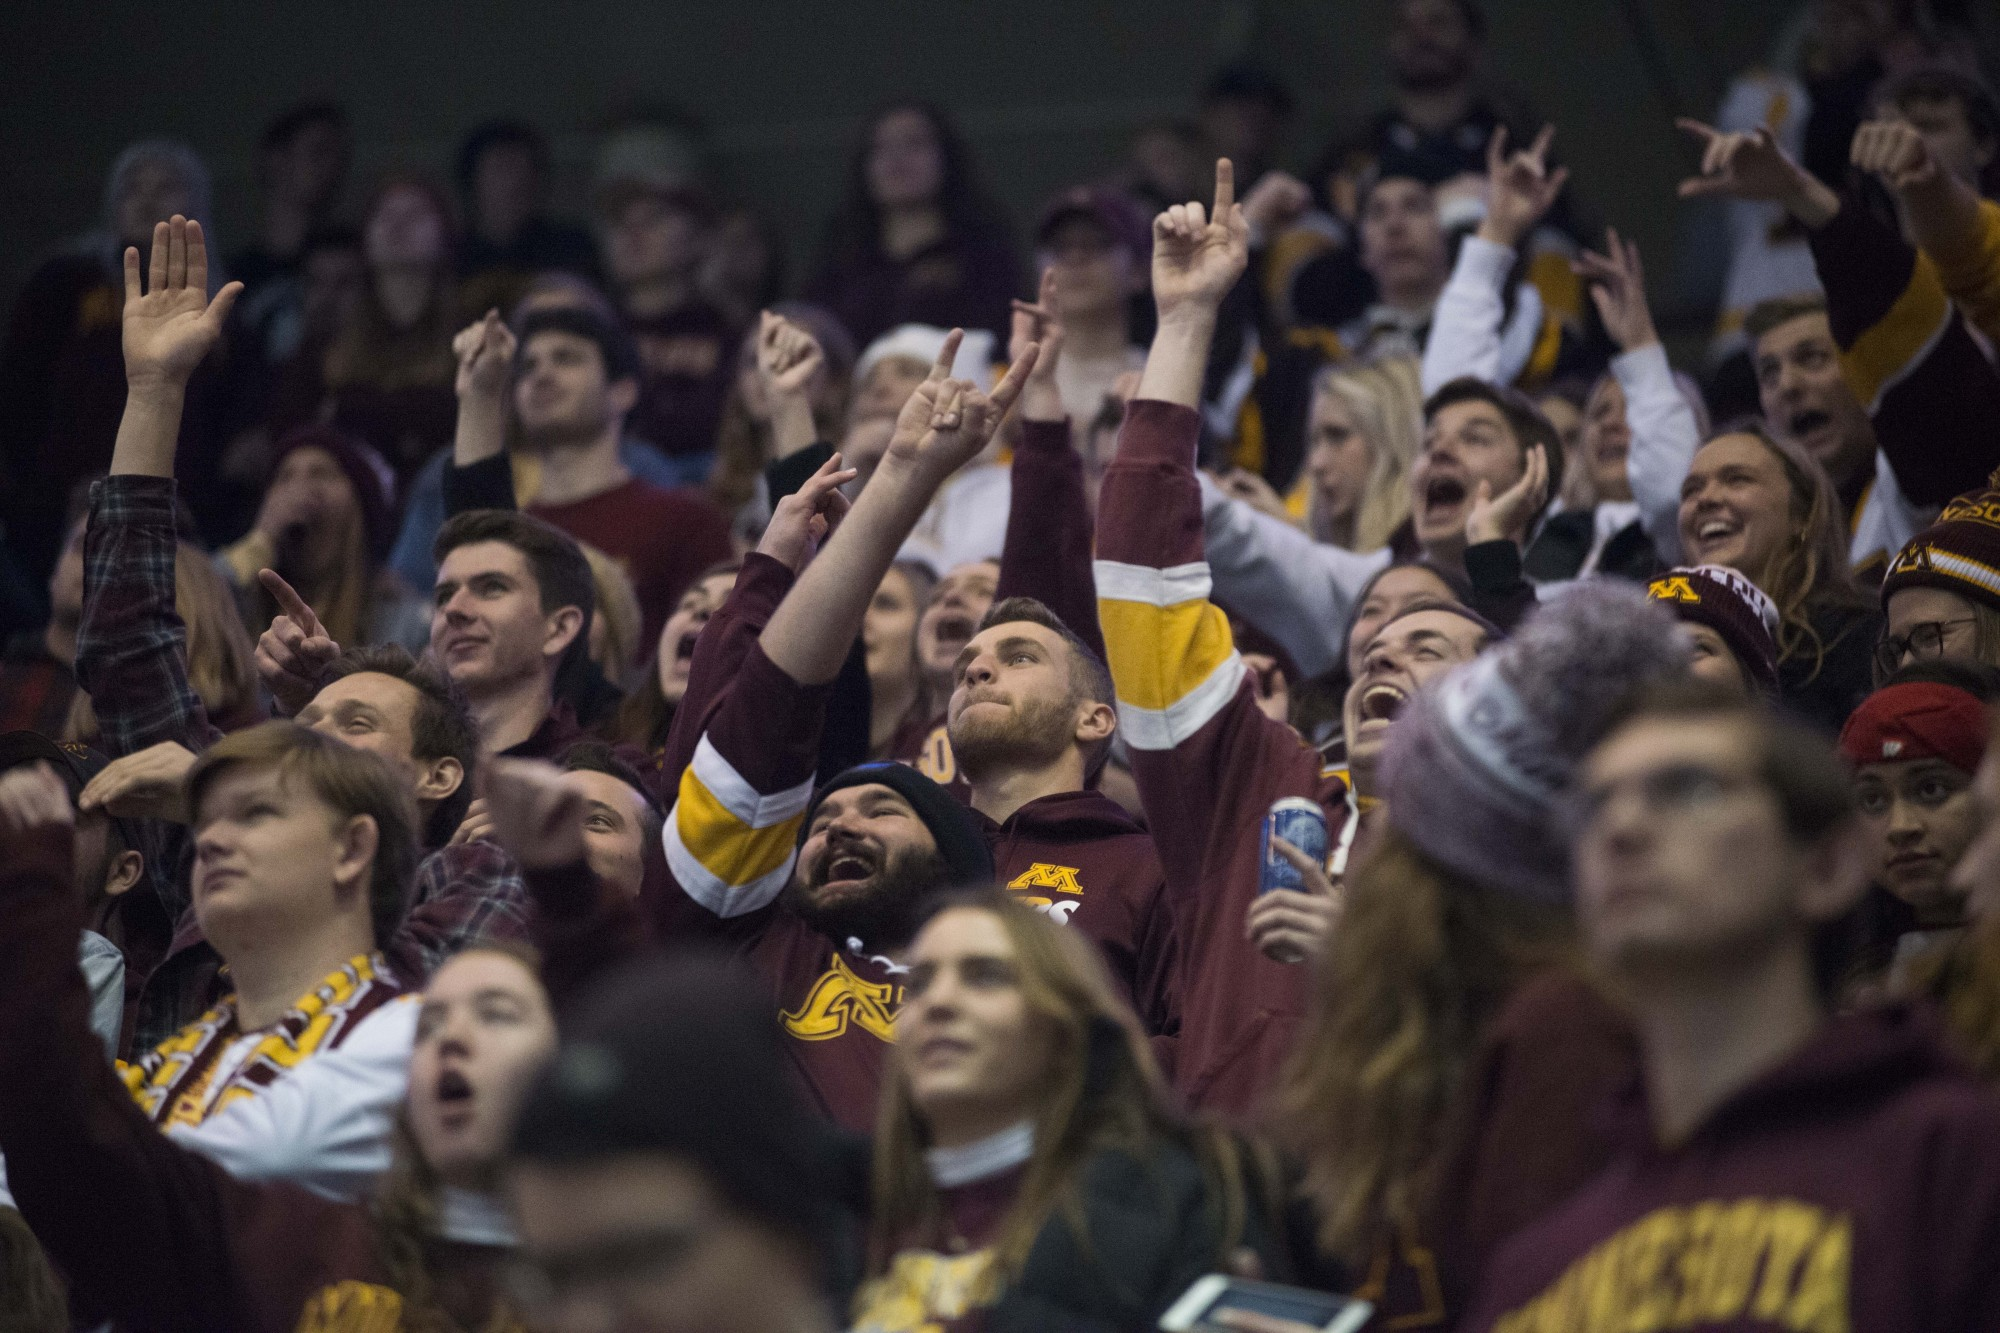 Fans cheer for the Gophers during the game against the Wisconsin Badgers at 3M Arena at Mariucci on Friday, Nov. 22. The Gophers won 4-1.